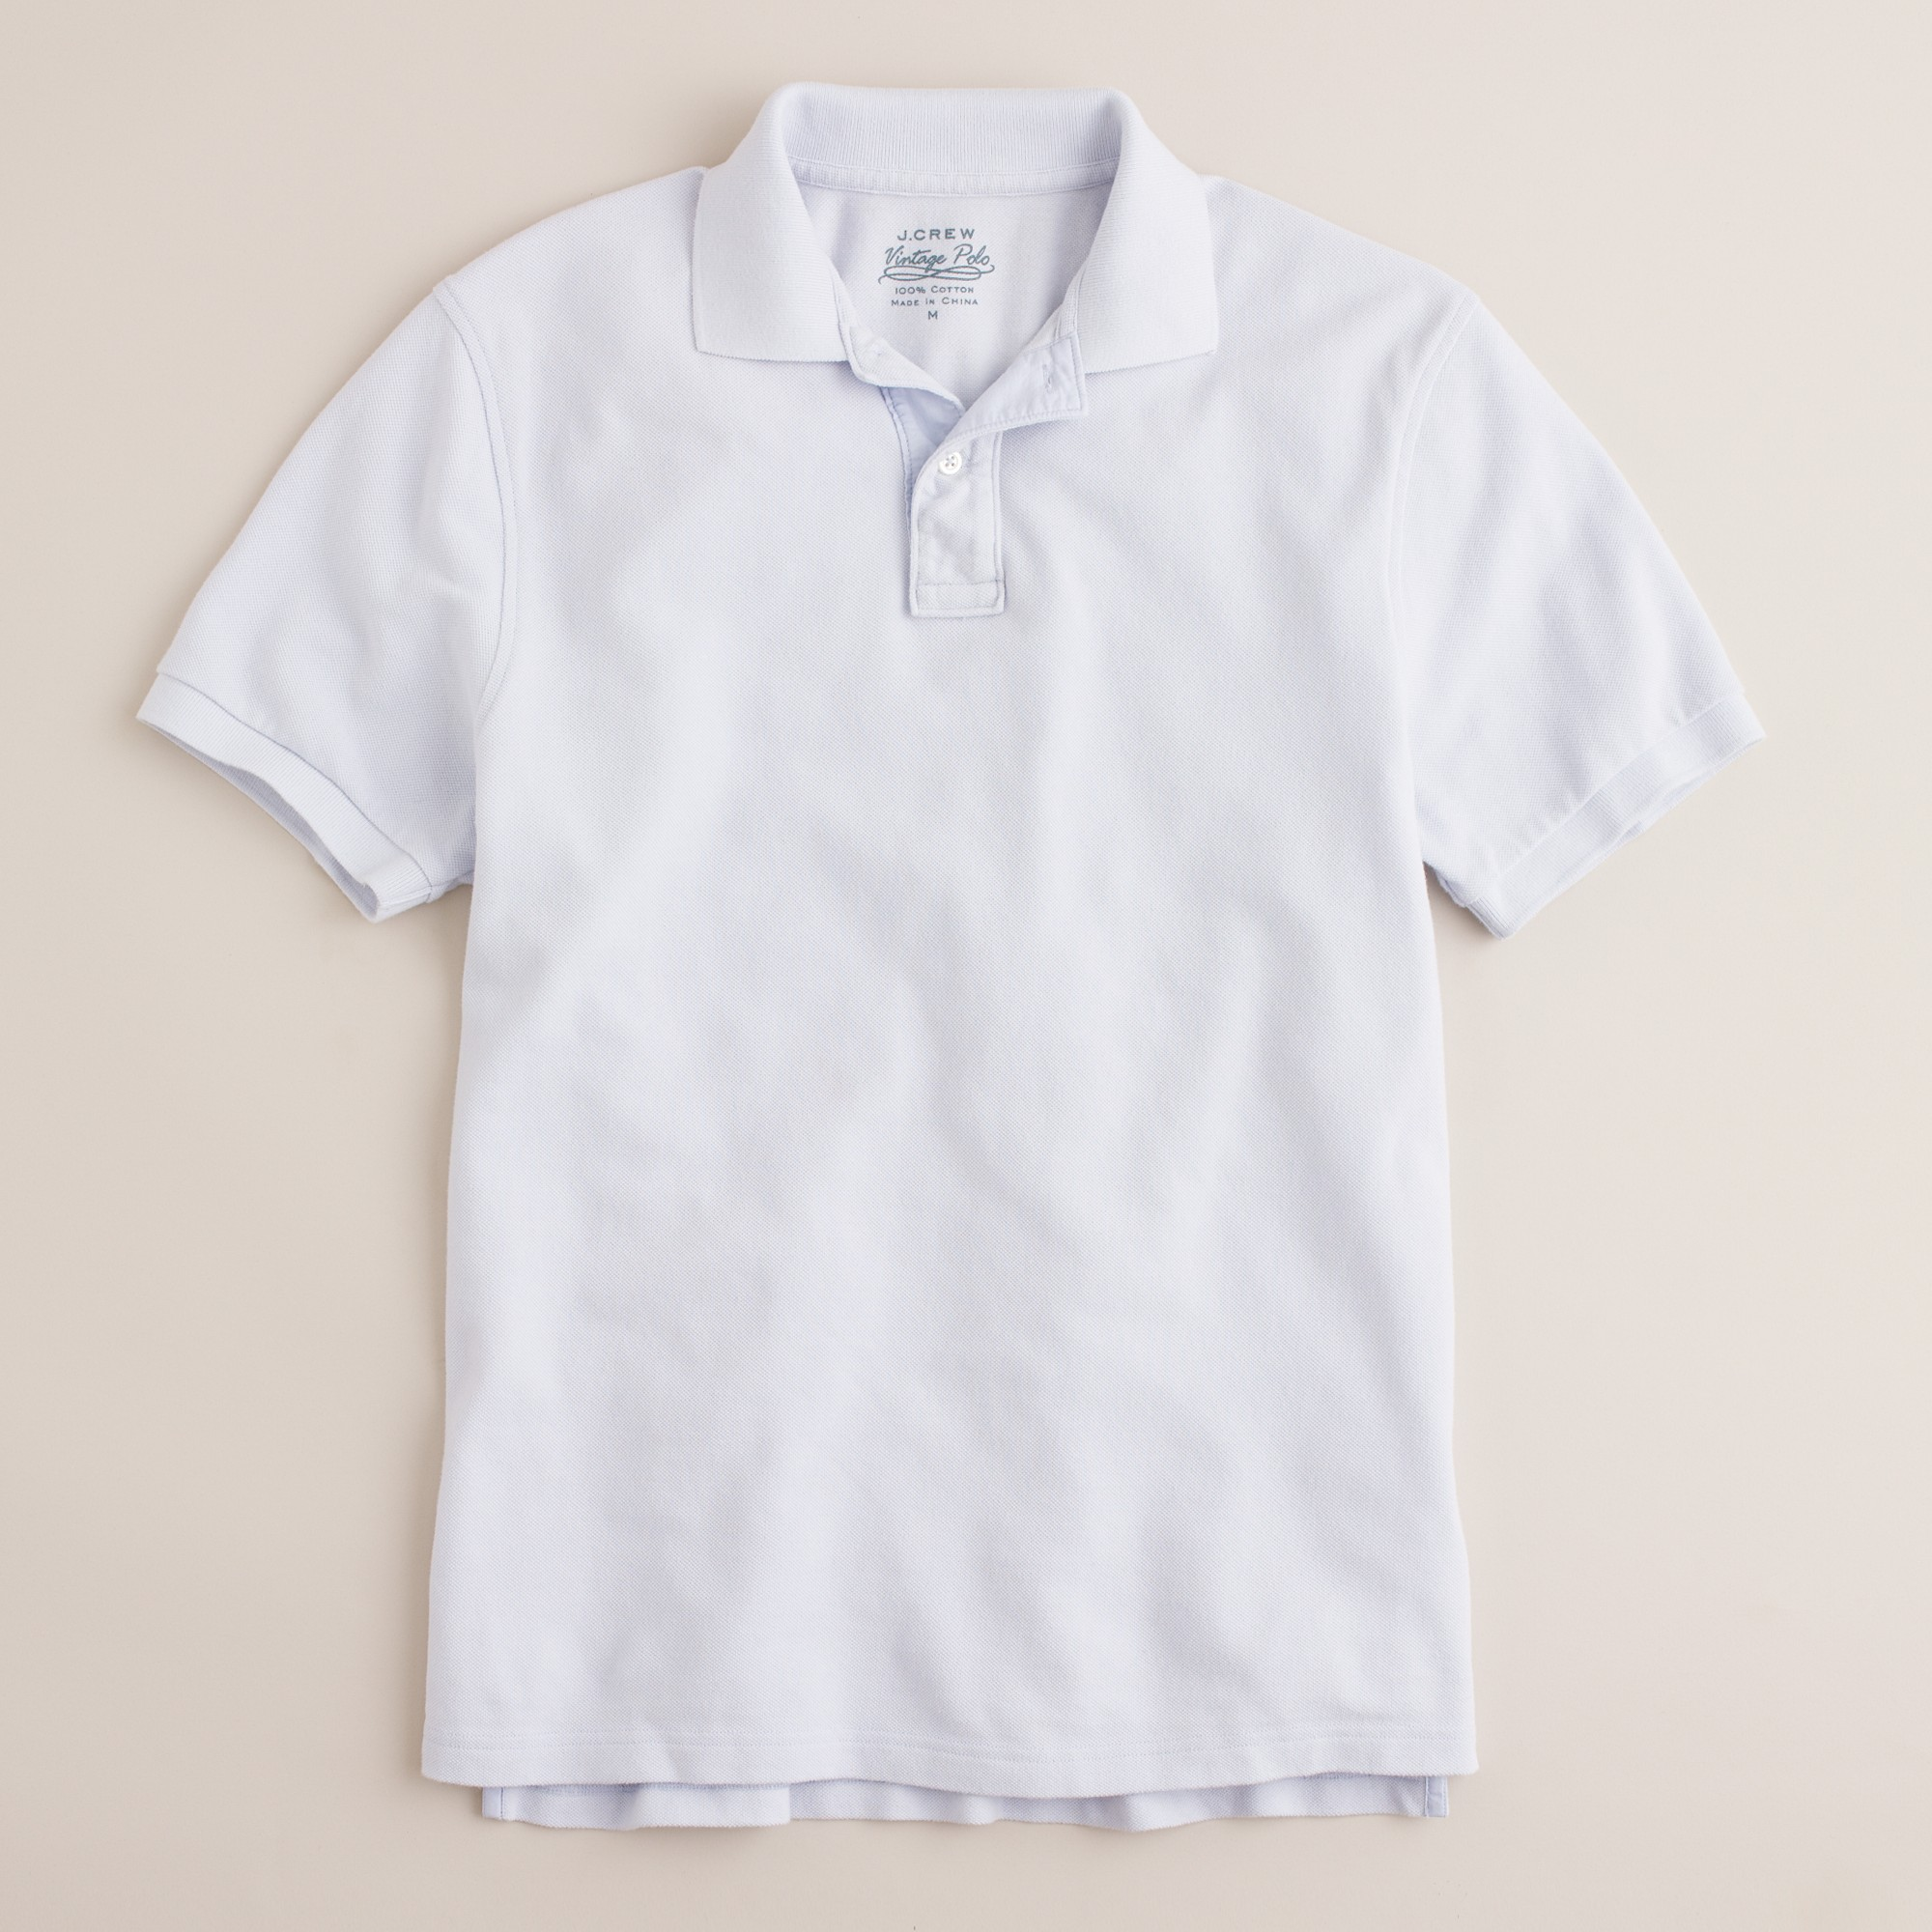 a403a31c Lyst - J.Crew Vintage Polo in Tailored Fit in White for Men